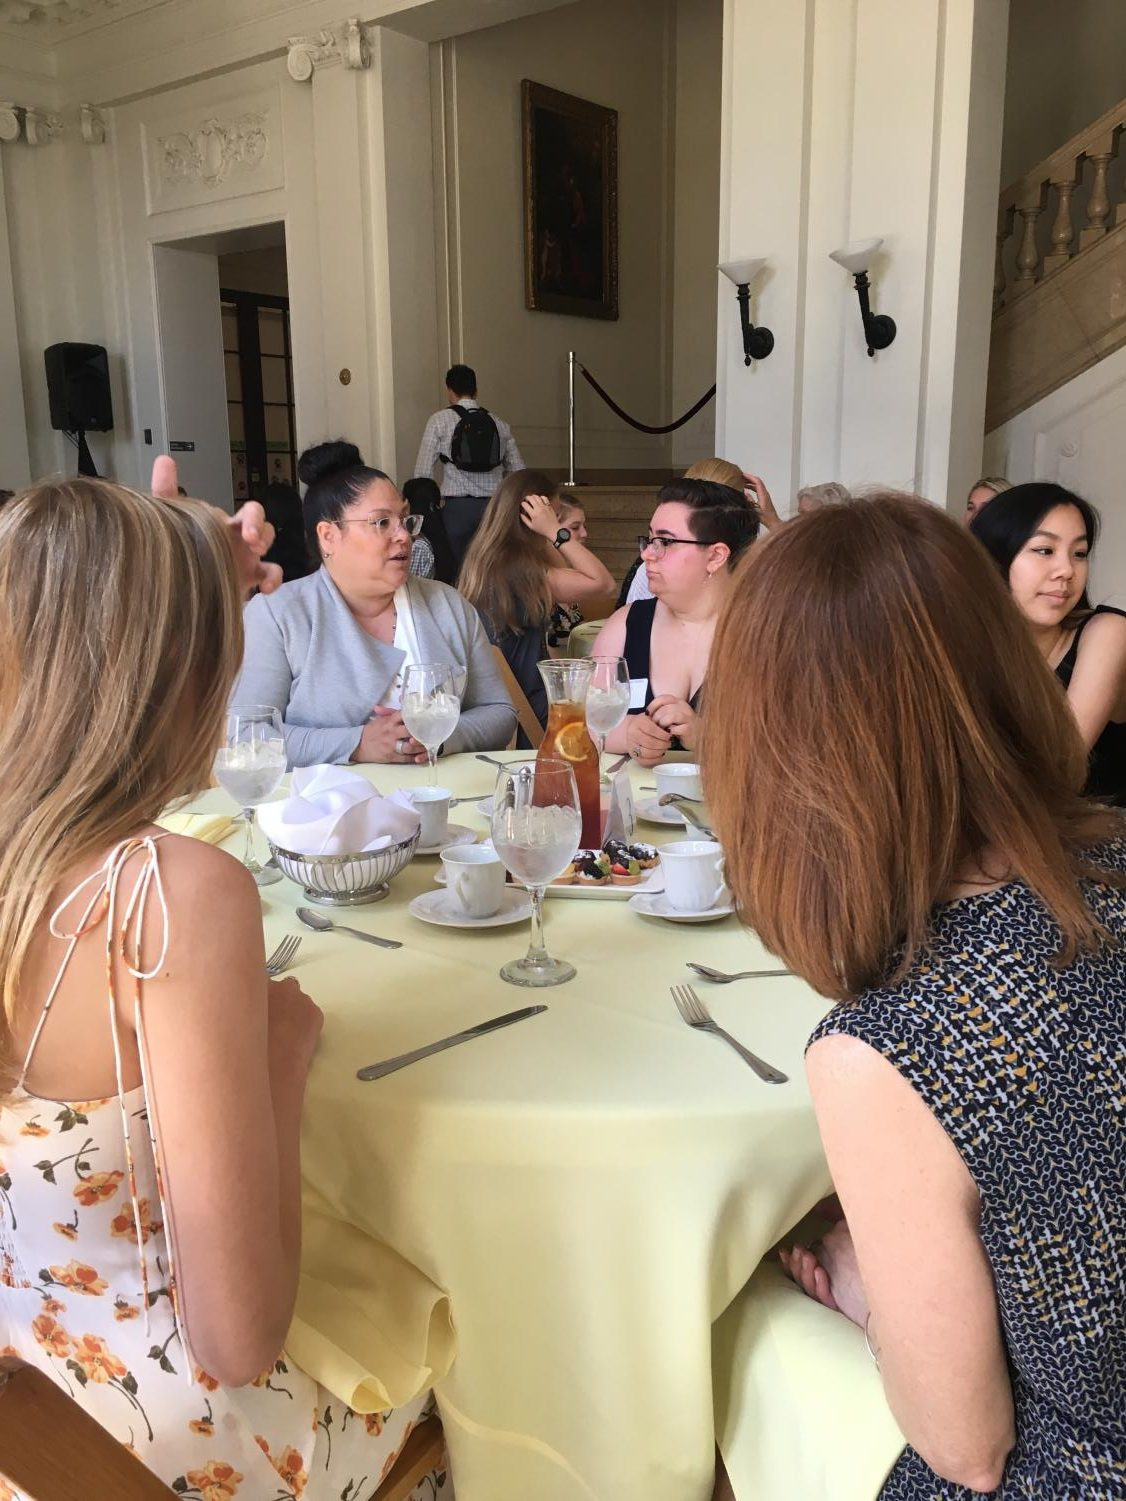 Seniors and members of the Sacred Heart alumnae network talk among themselves at the Alumnae Luncheon. During the luncheon, seniors were given sweets and gifts to welcome them into the network.